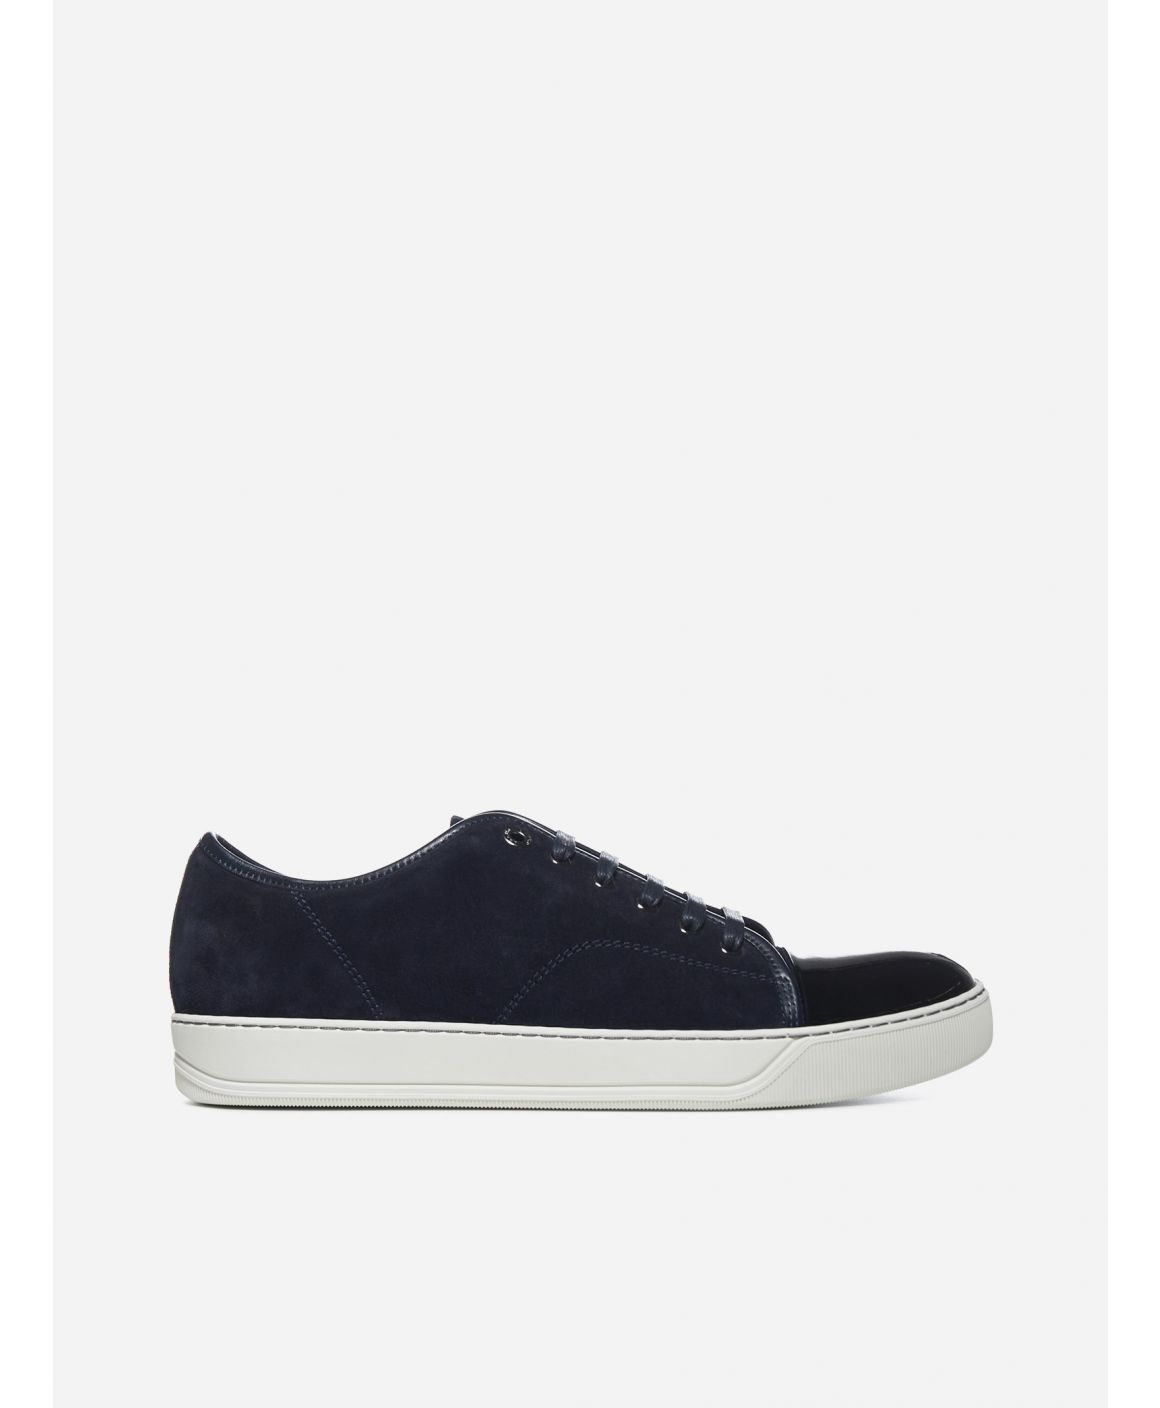 Patent leather toe-cap suede sneakers